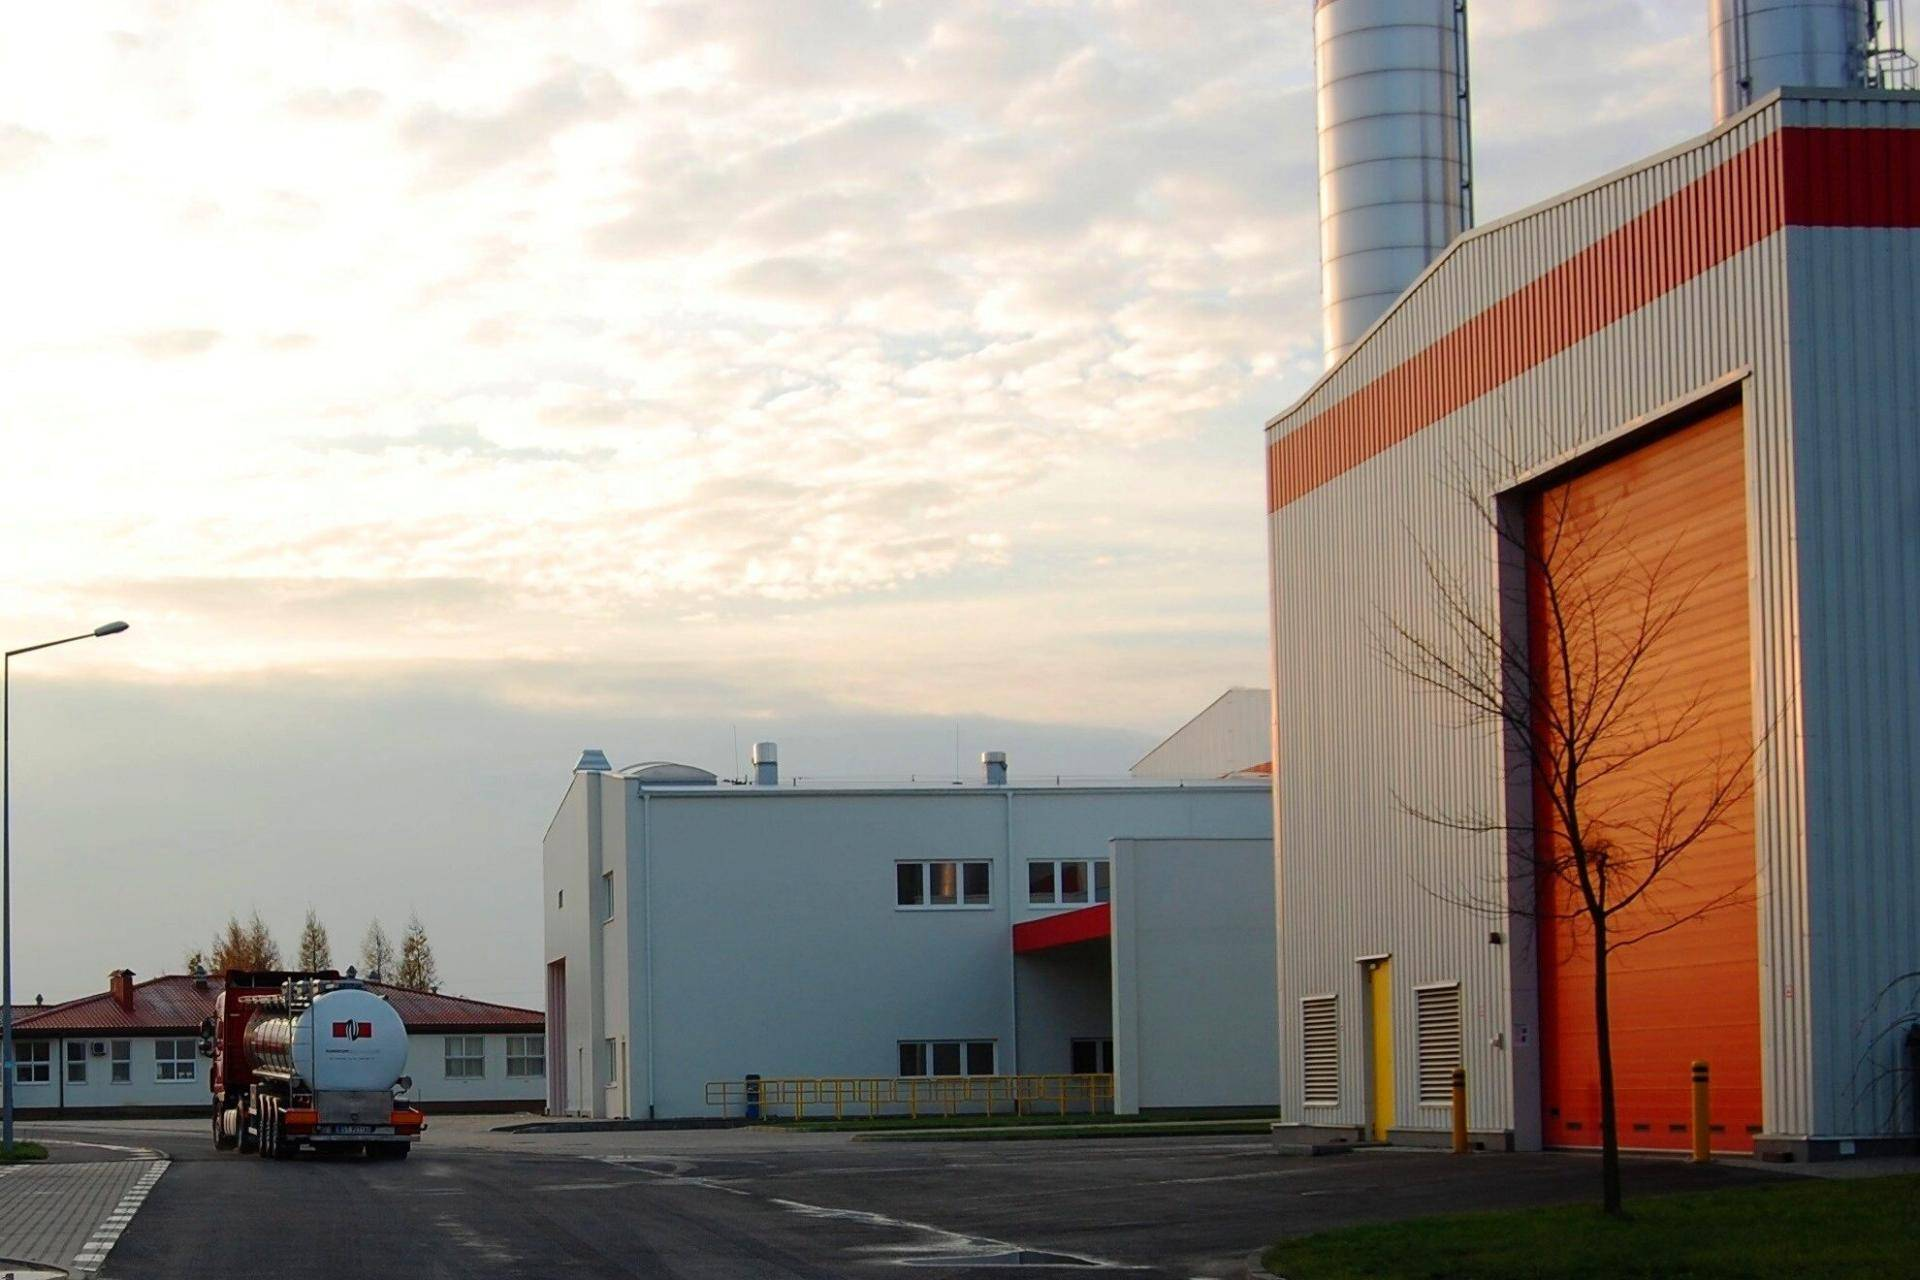 Barry Callebaut chocolate plant in Lodz